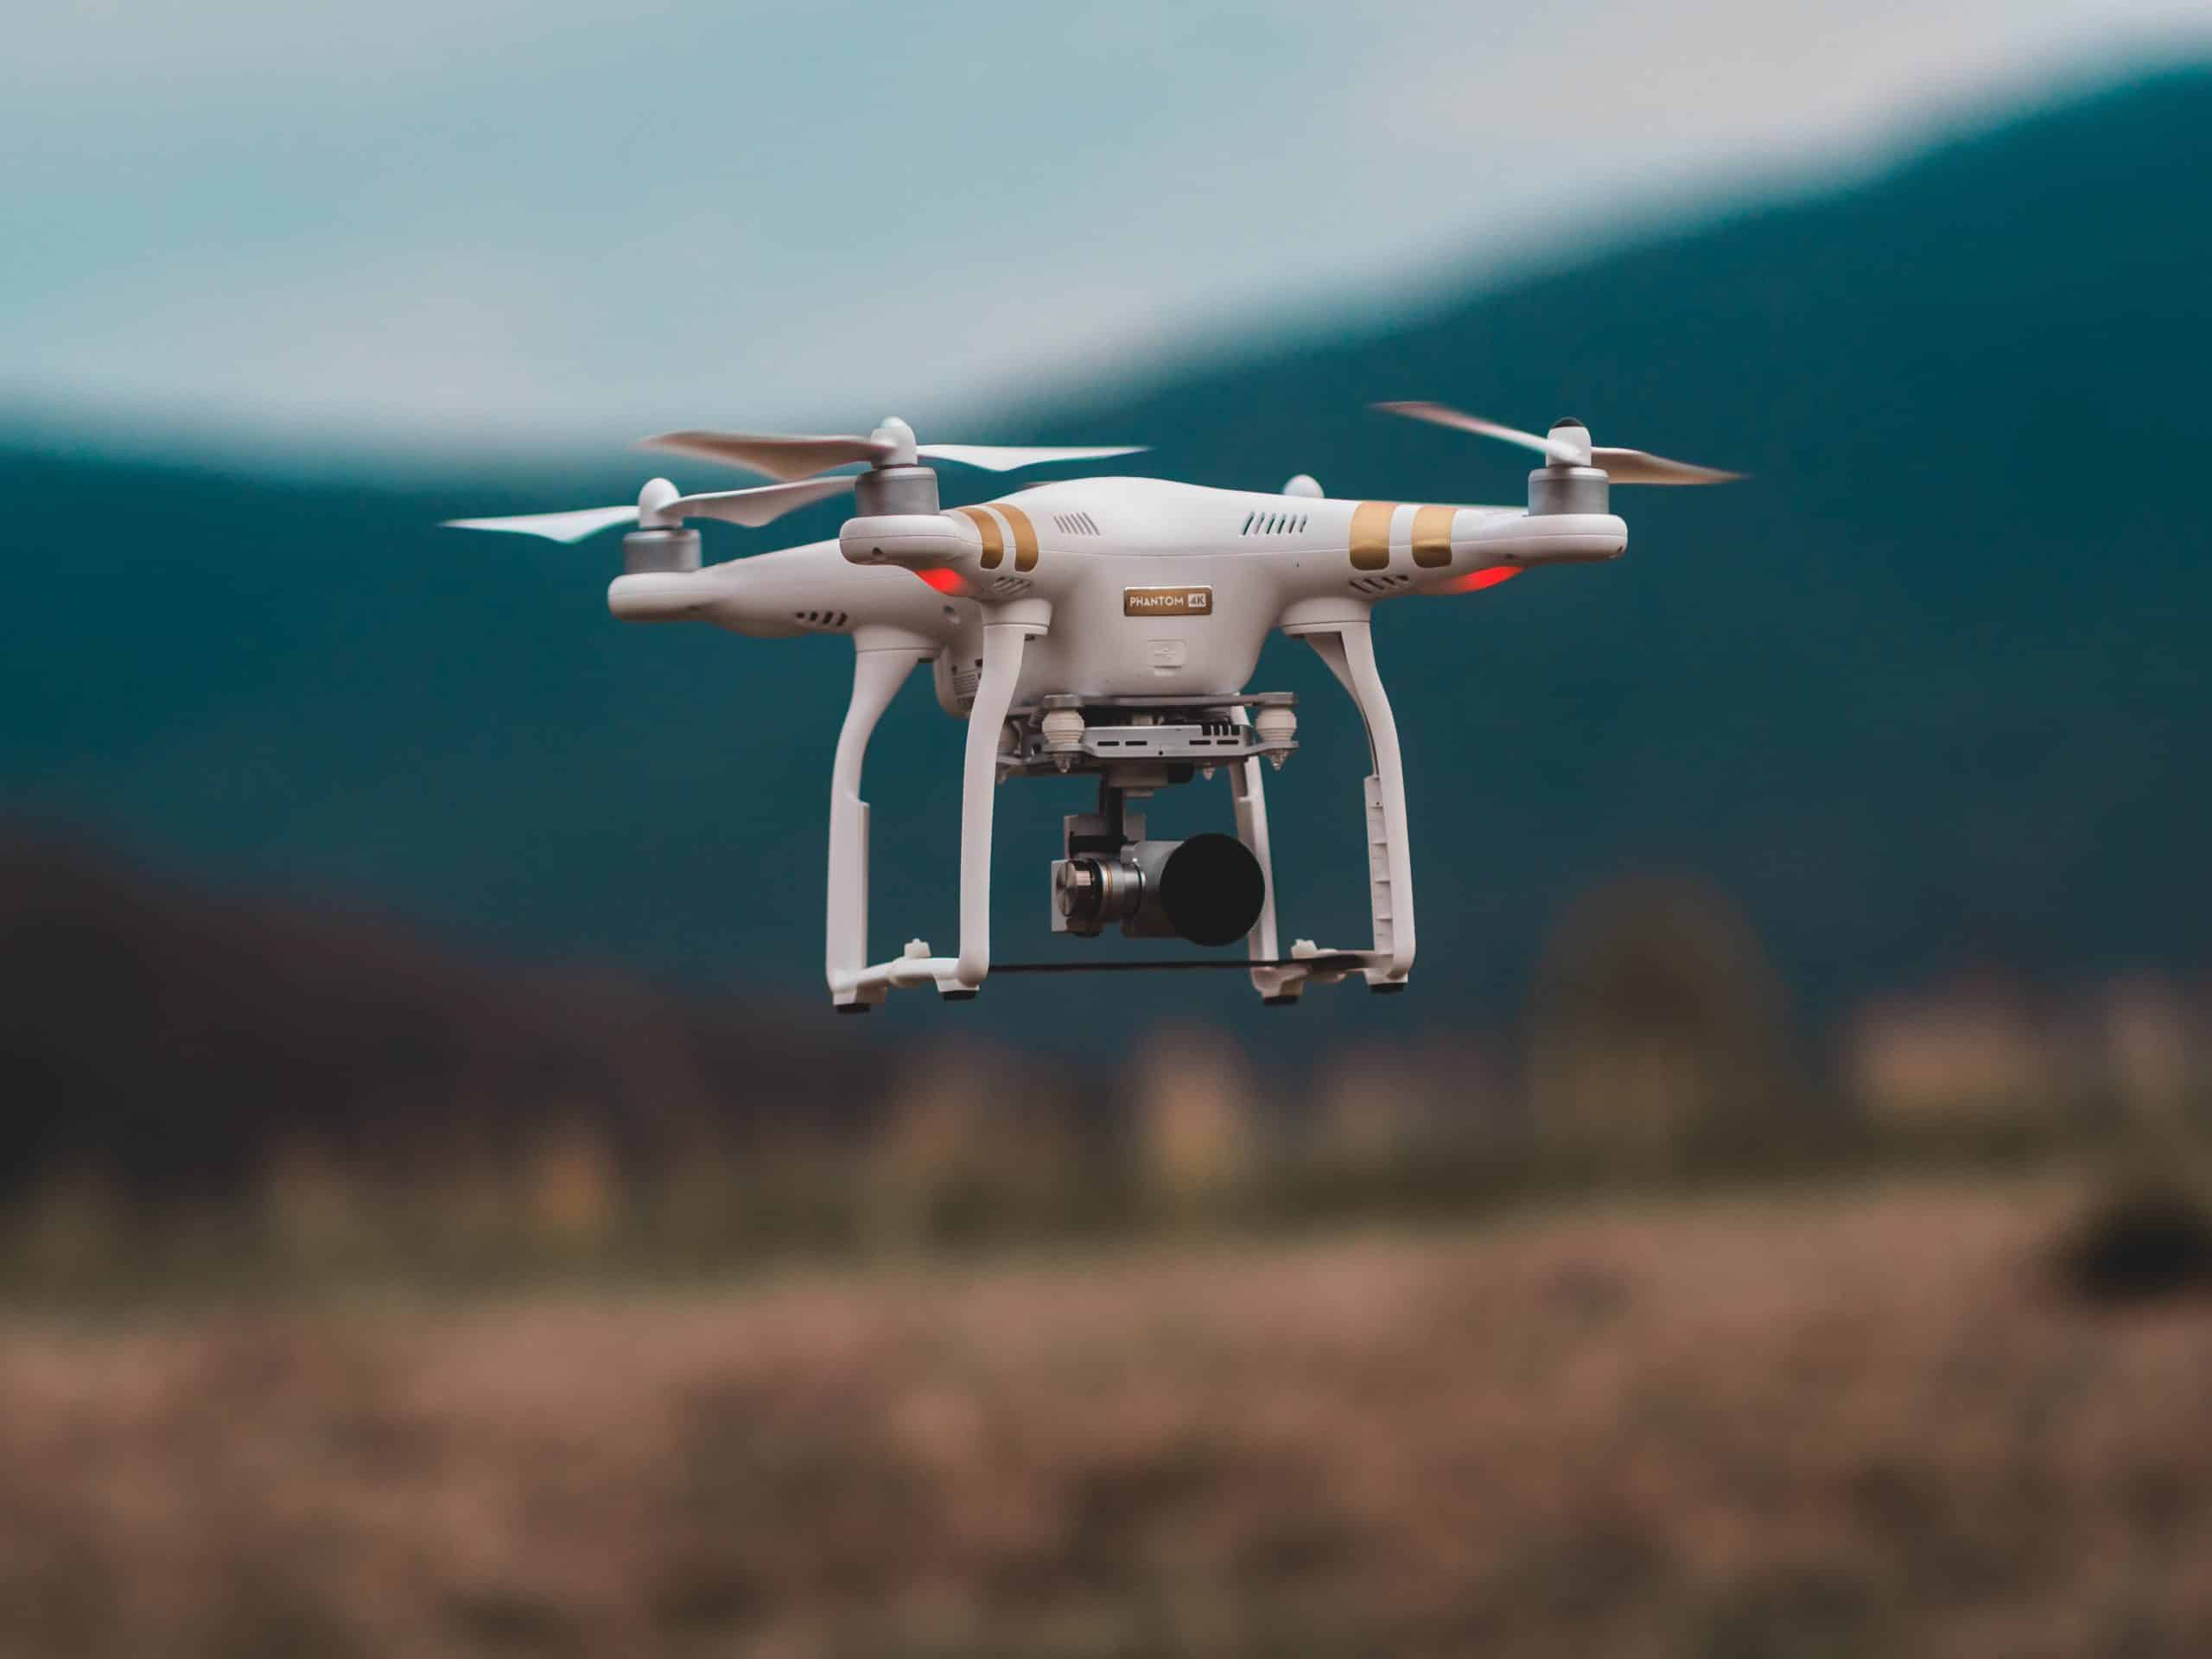 The Advantages of Using Drones Over Piloted Aircraft